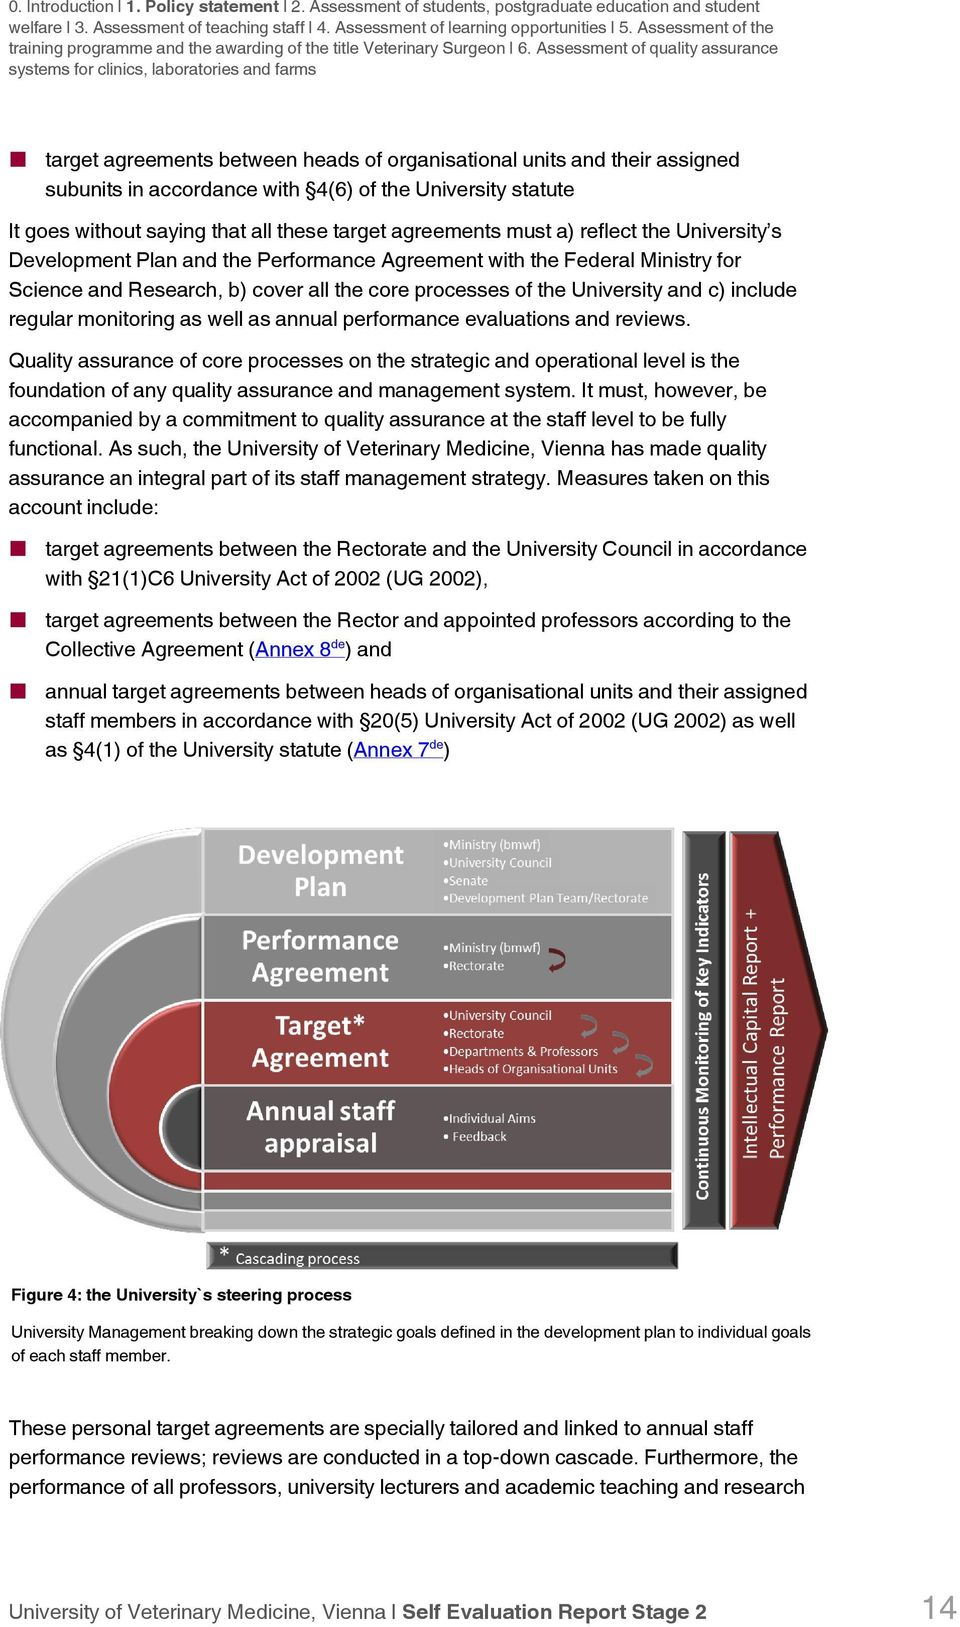 Assessment of quality assurance systems for clinics, laboratories and farms target agreements between heads of organisational units and their assigned subunits in accordance with 4(6) of the